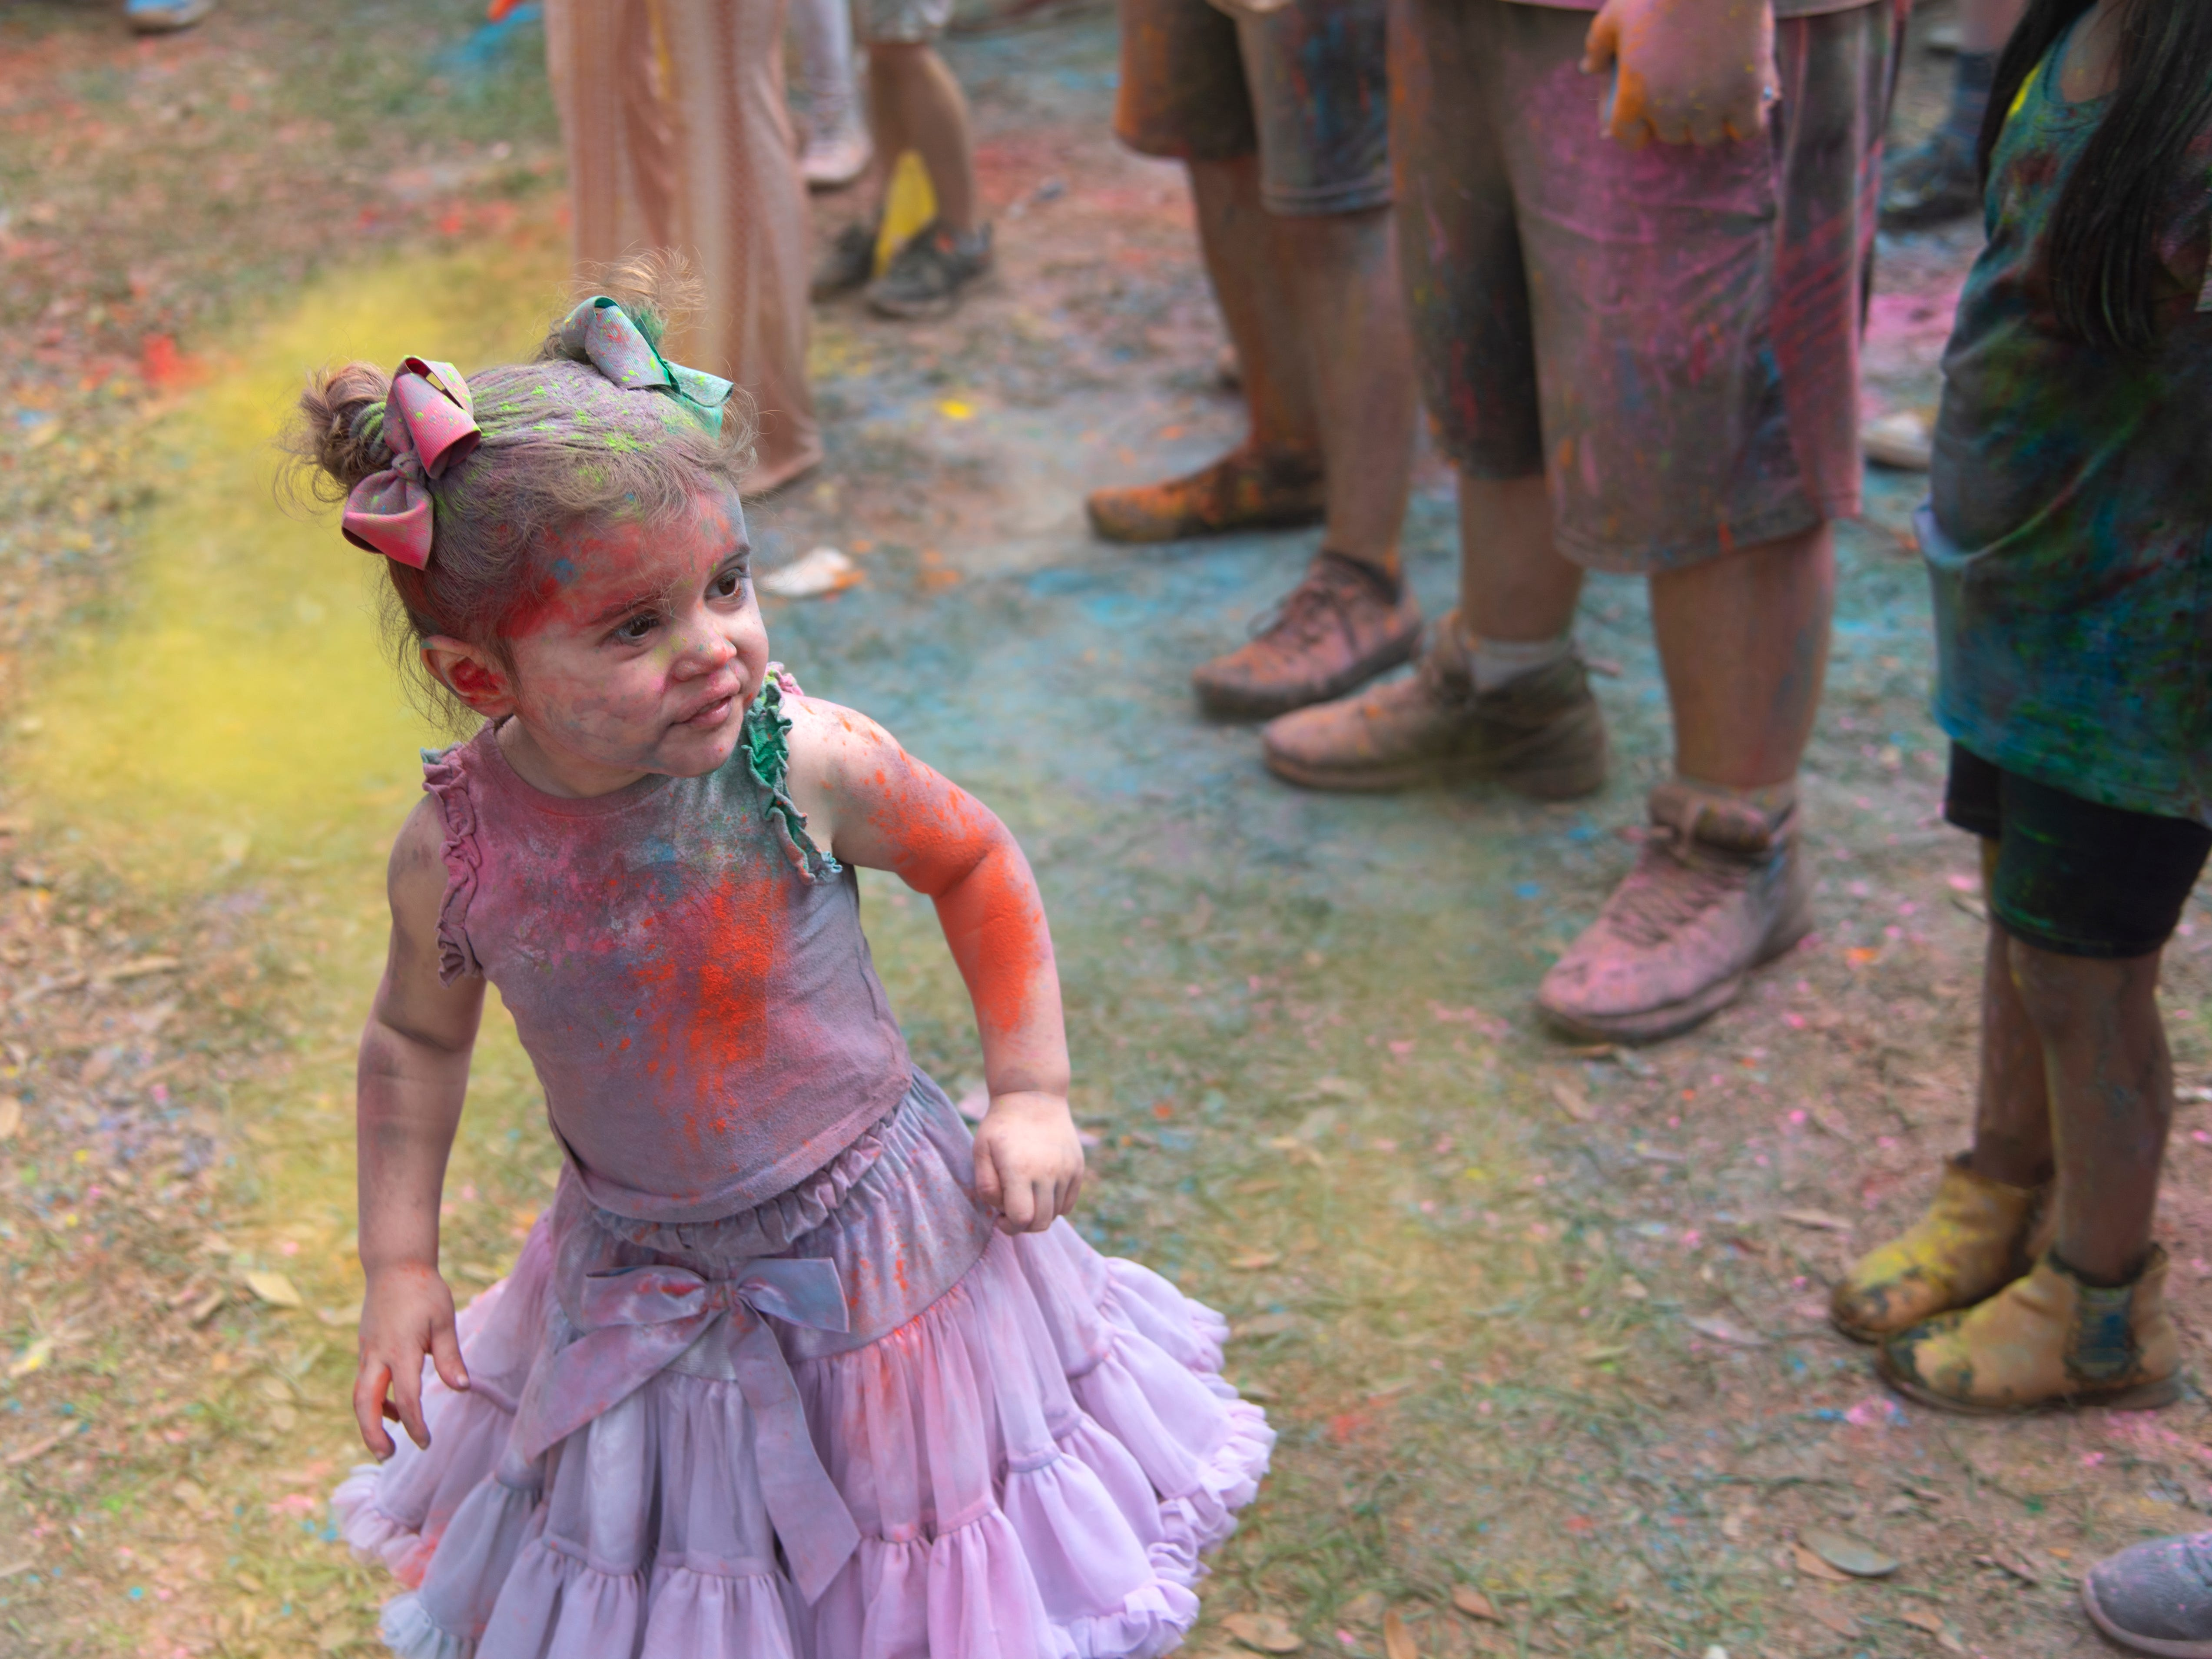 Leslie Cazares, 3, dances to the high-energy music at the ninth annual Holi Festival of Lafayette in Girard Park on Saturday, March 30, 2019.